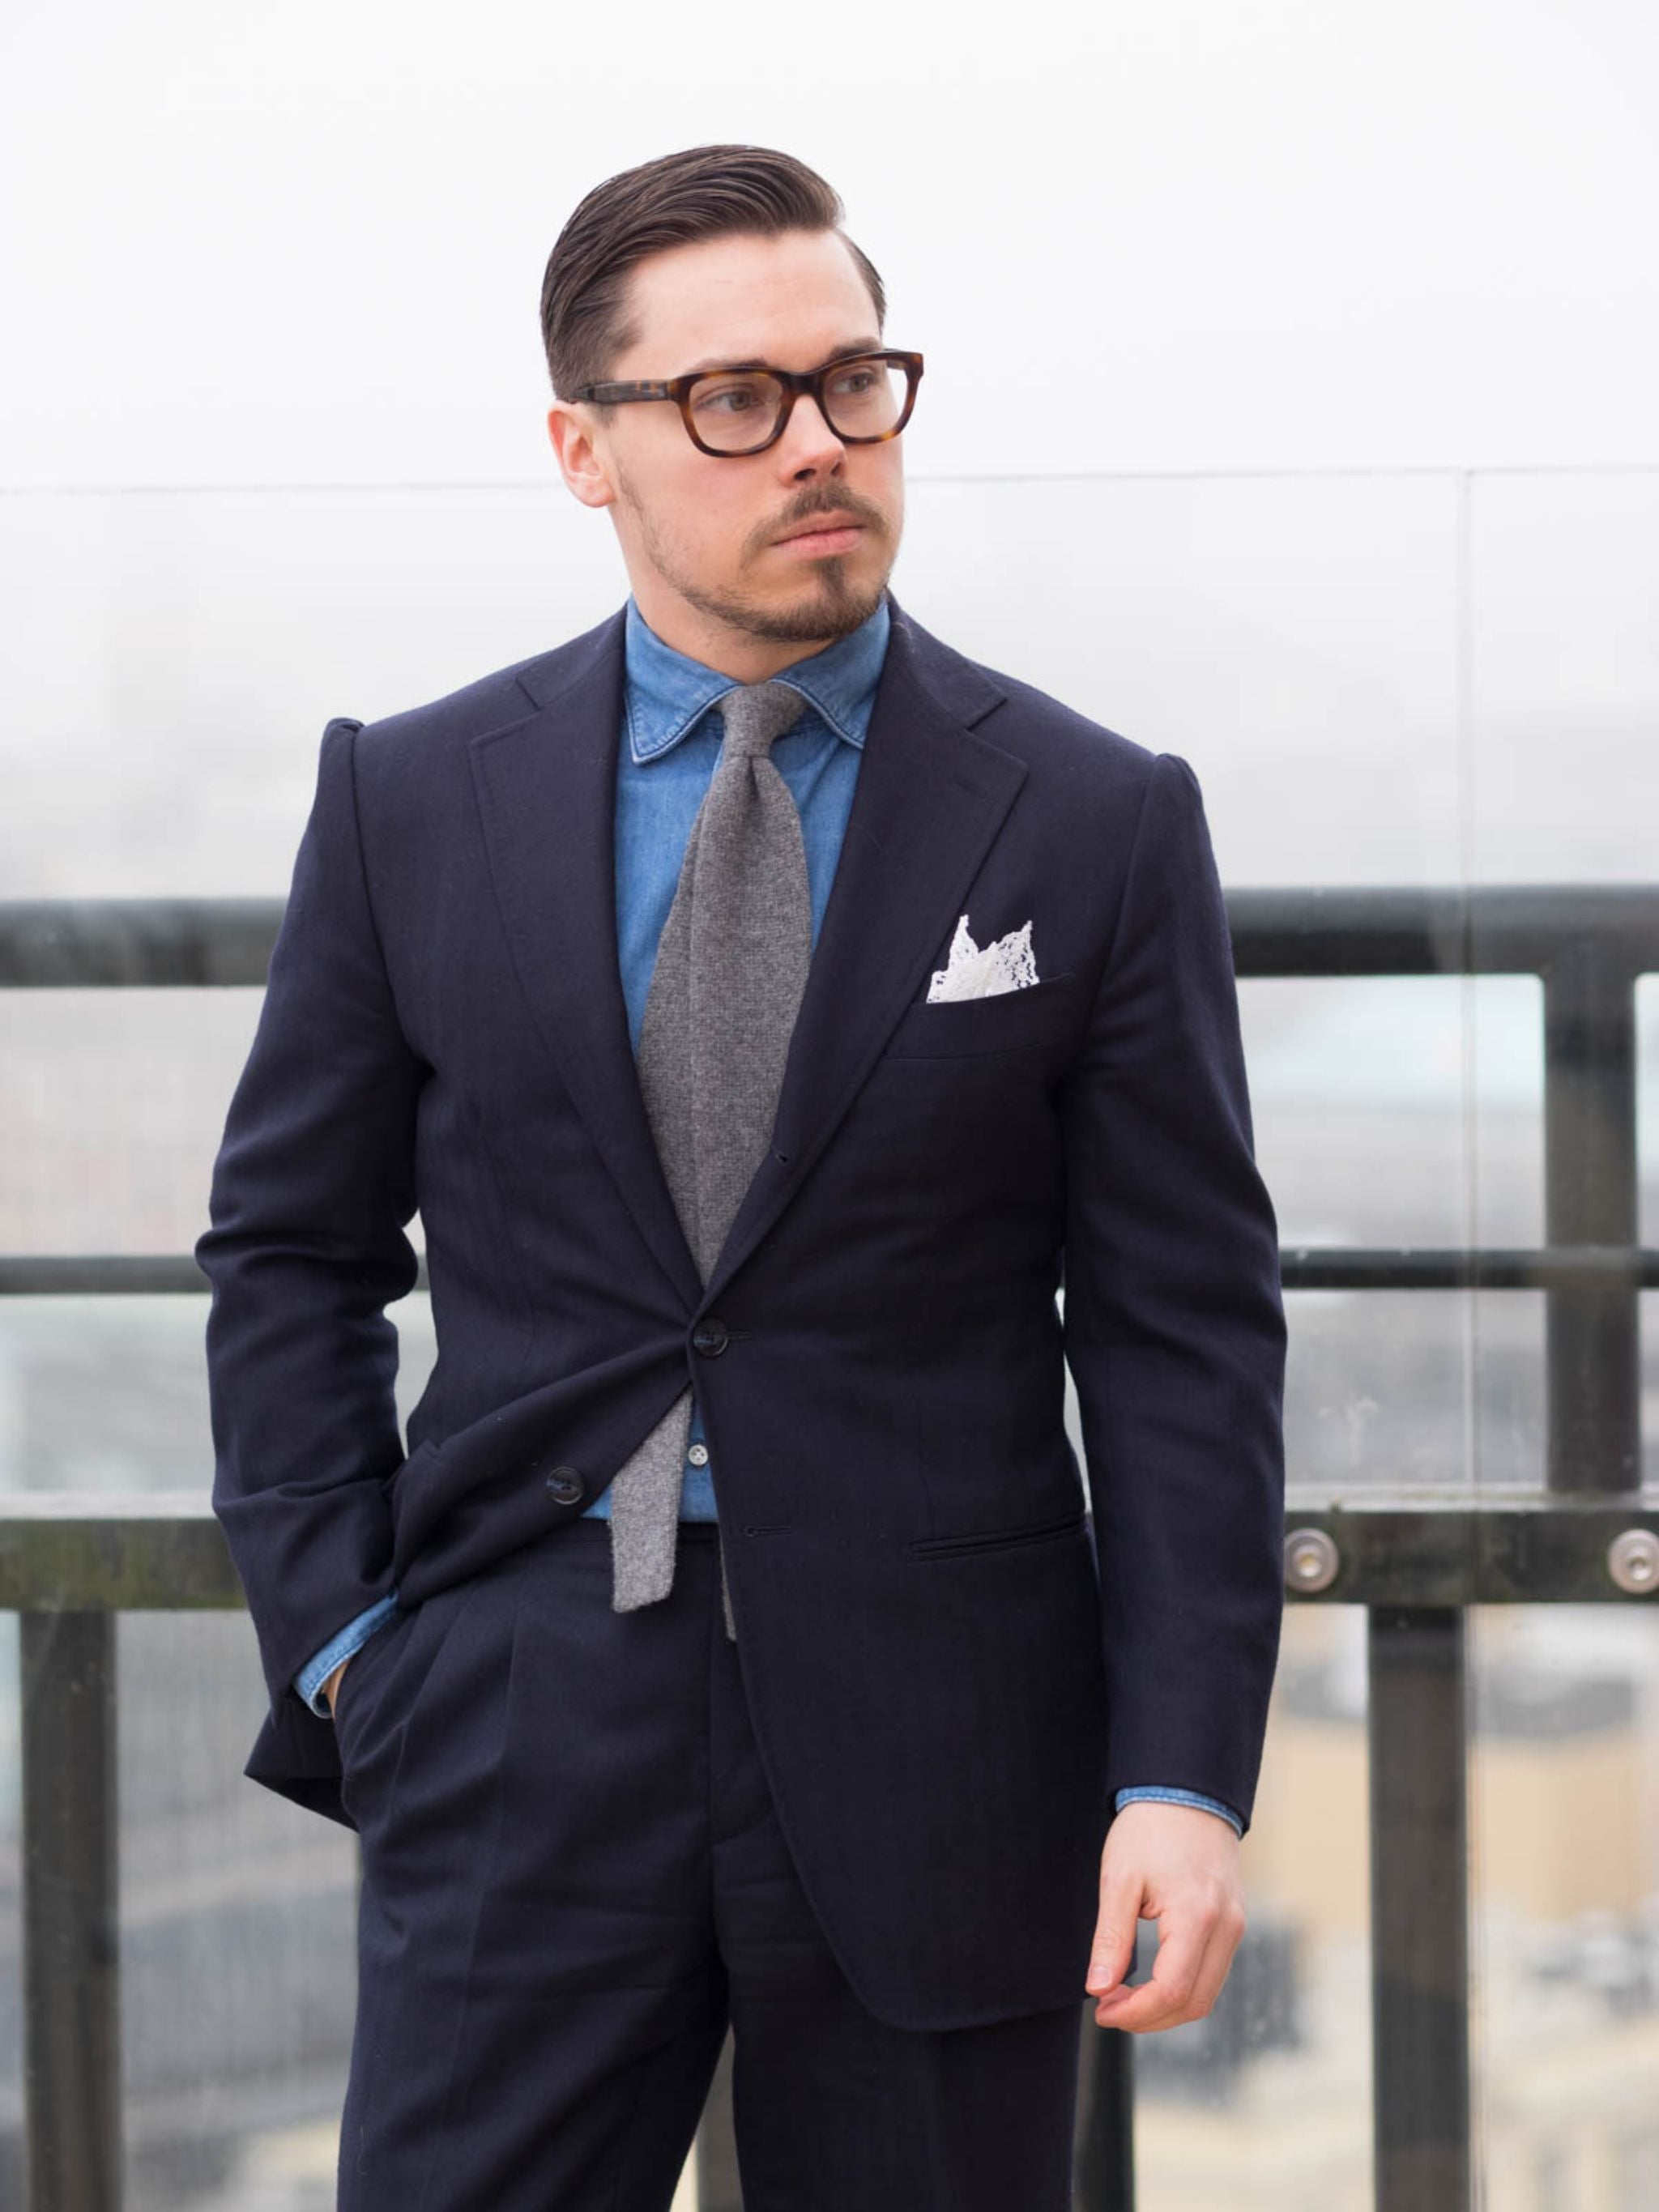 Business suit with denim shirt - DLA denim shirt, dark blue suit and gray cashmere tie